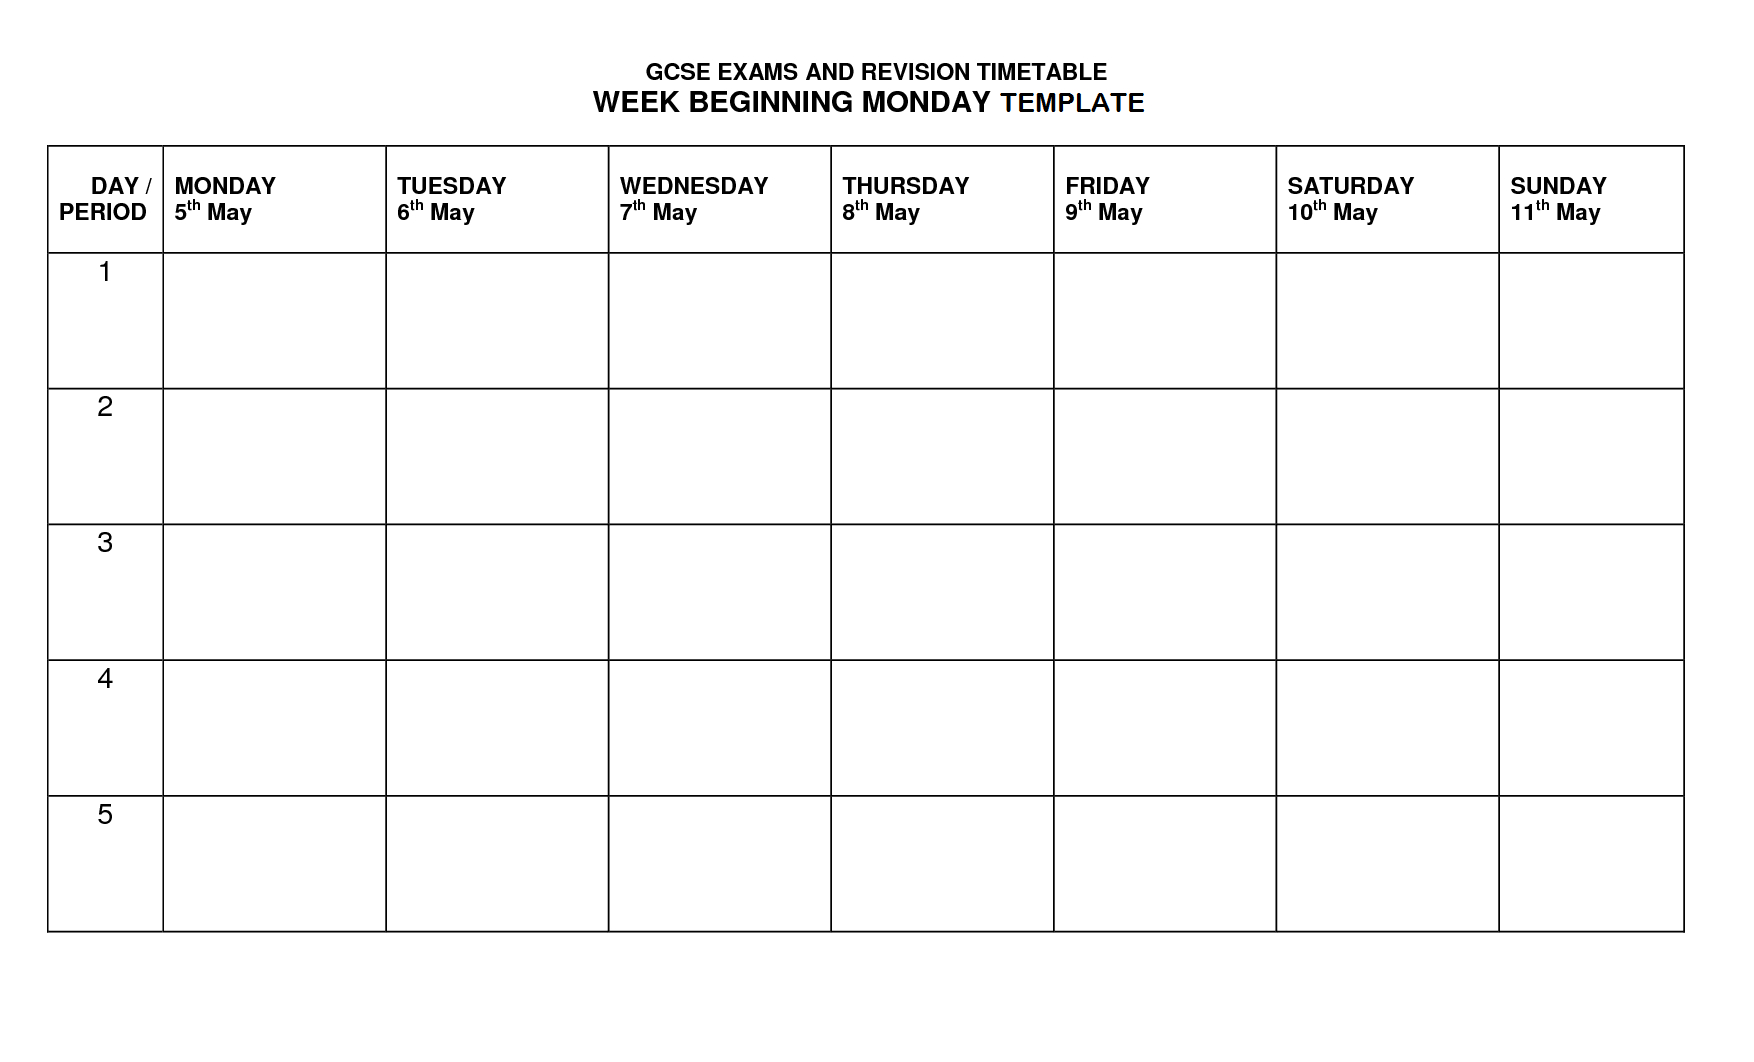 Timetable Template | Timetable Templates | Timetable Template intended for Monday To Friday Timetable Template